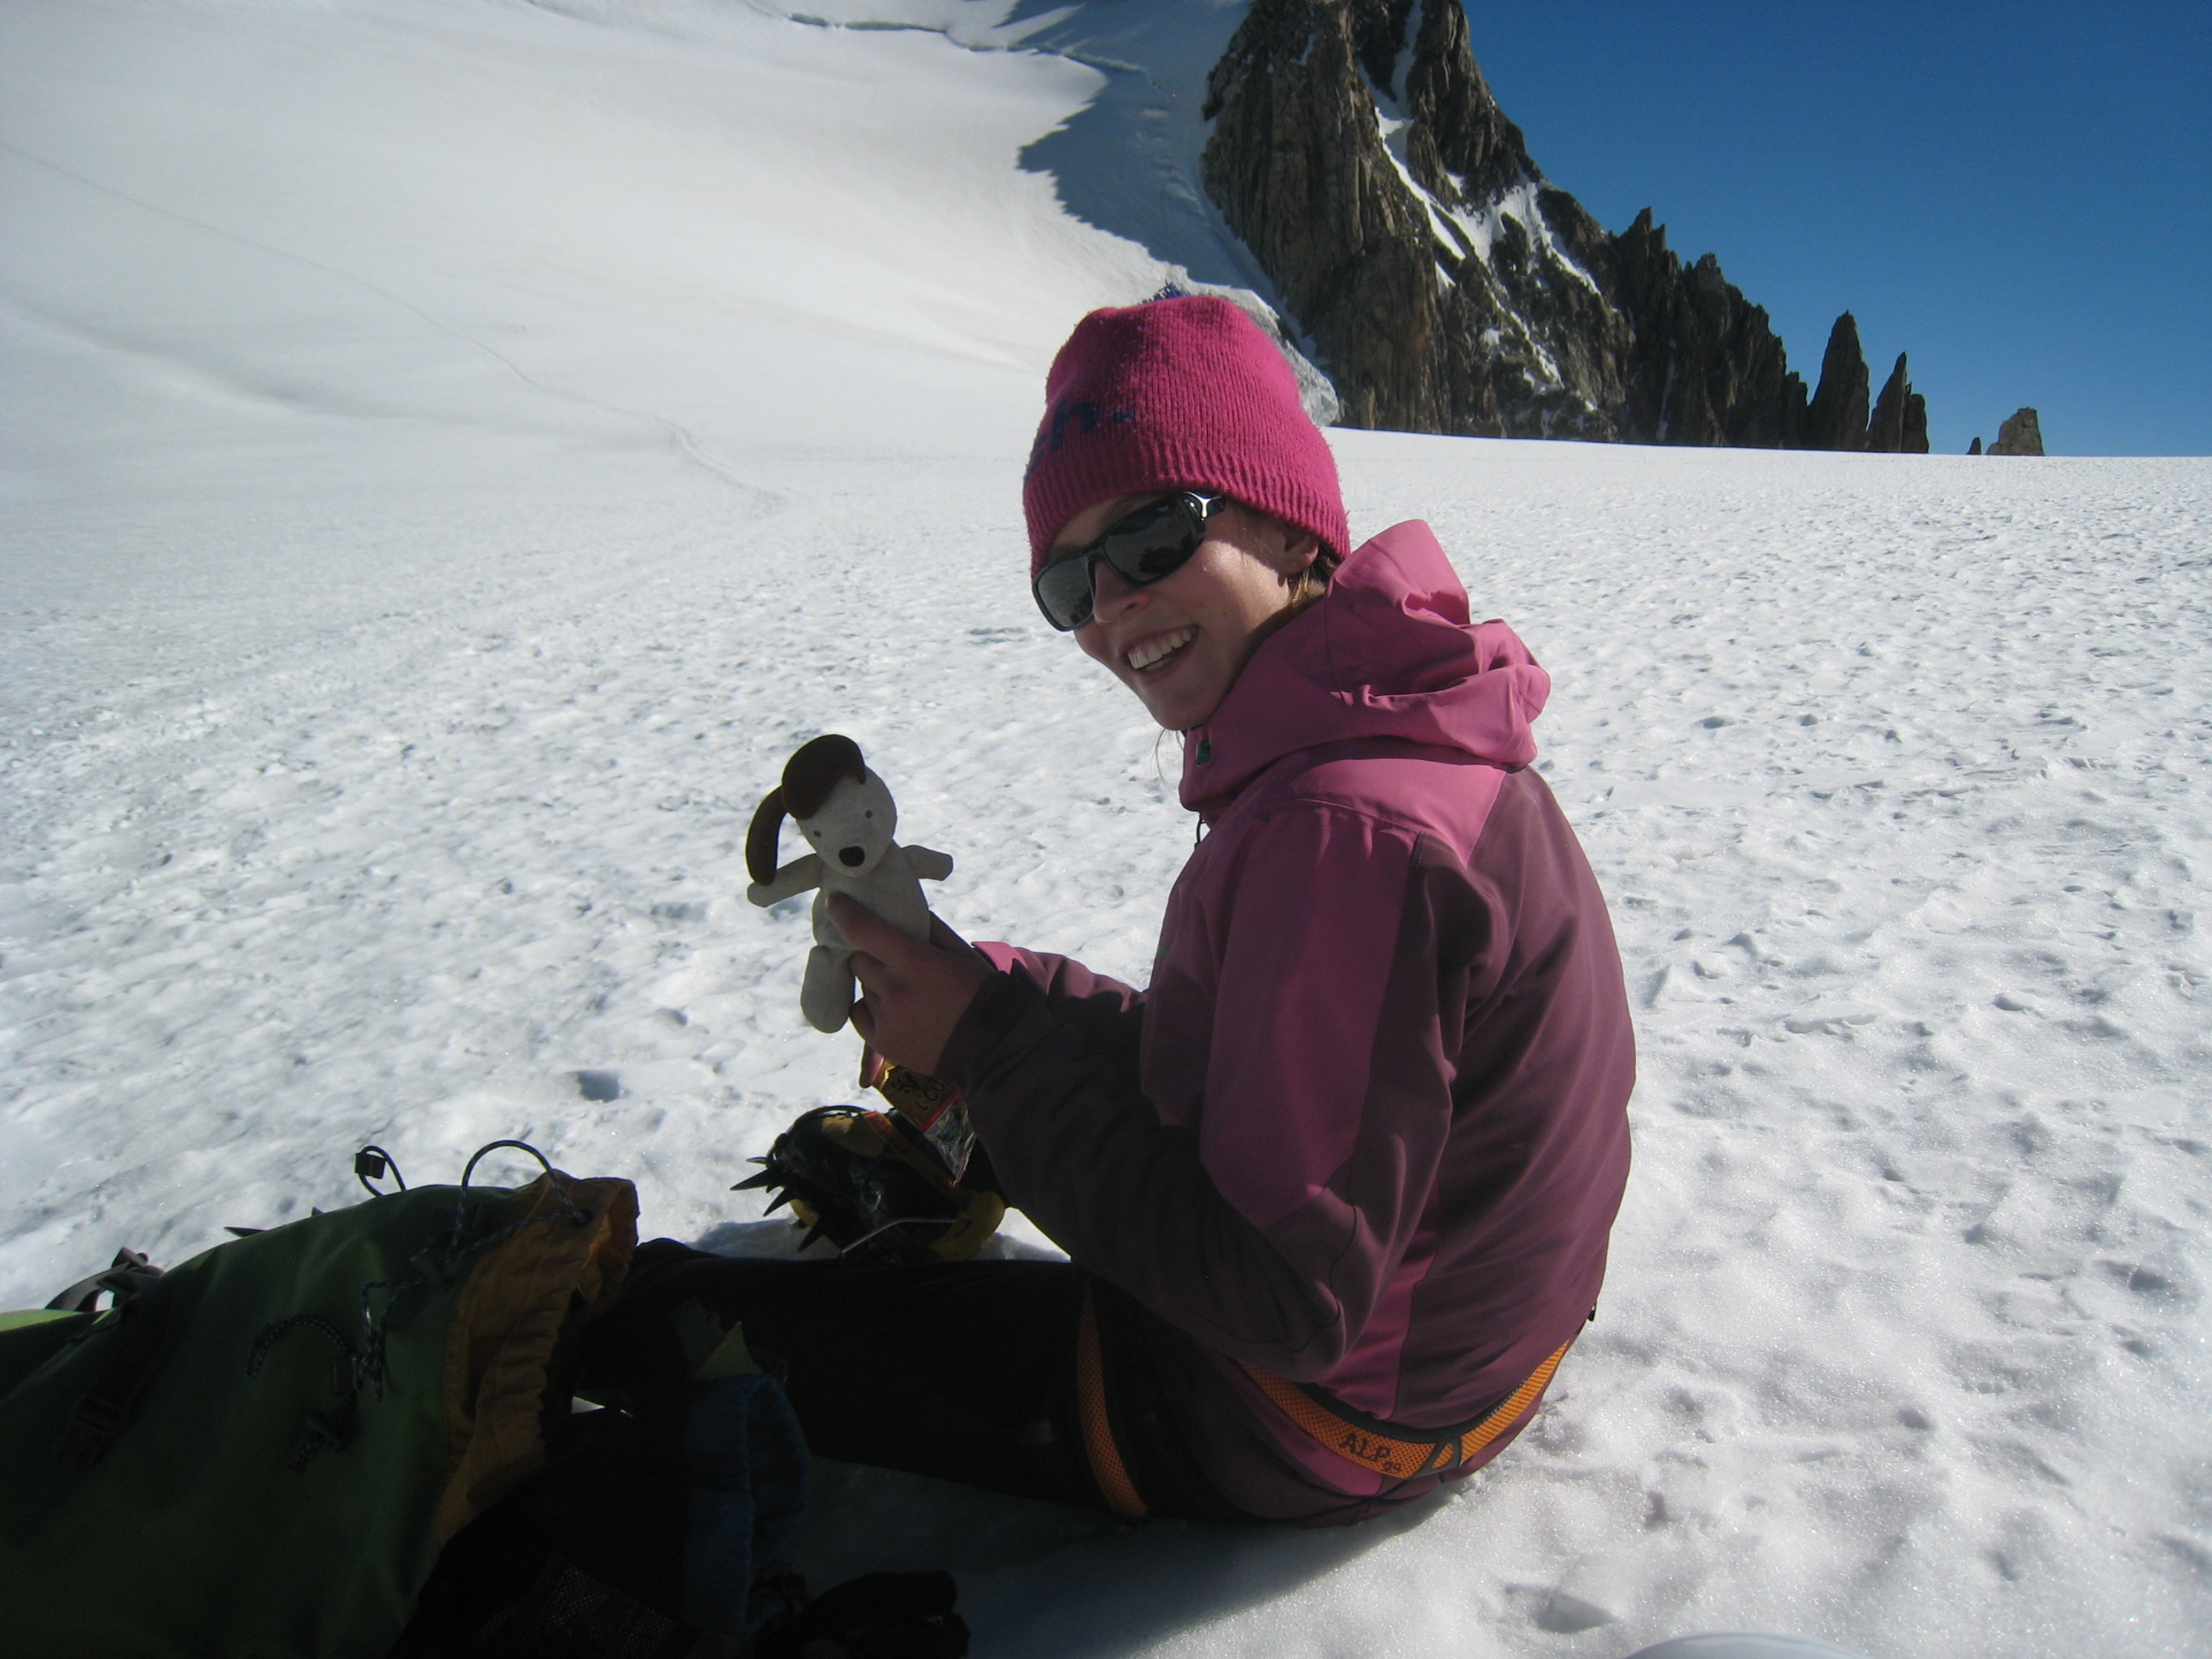 Andrea Seaton on Mont Blanc